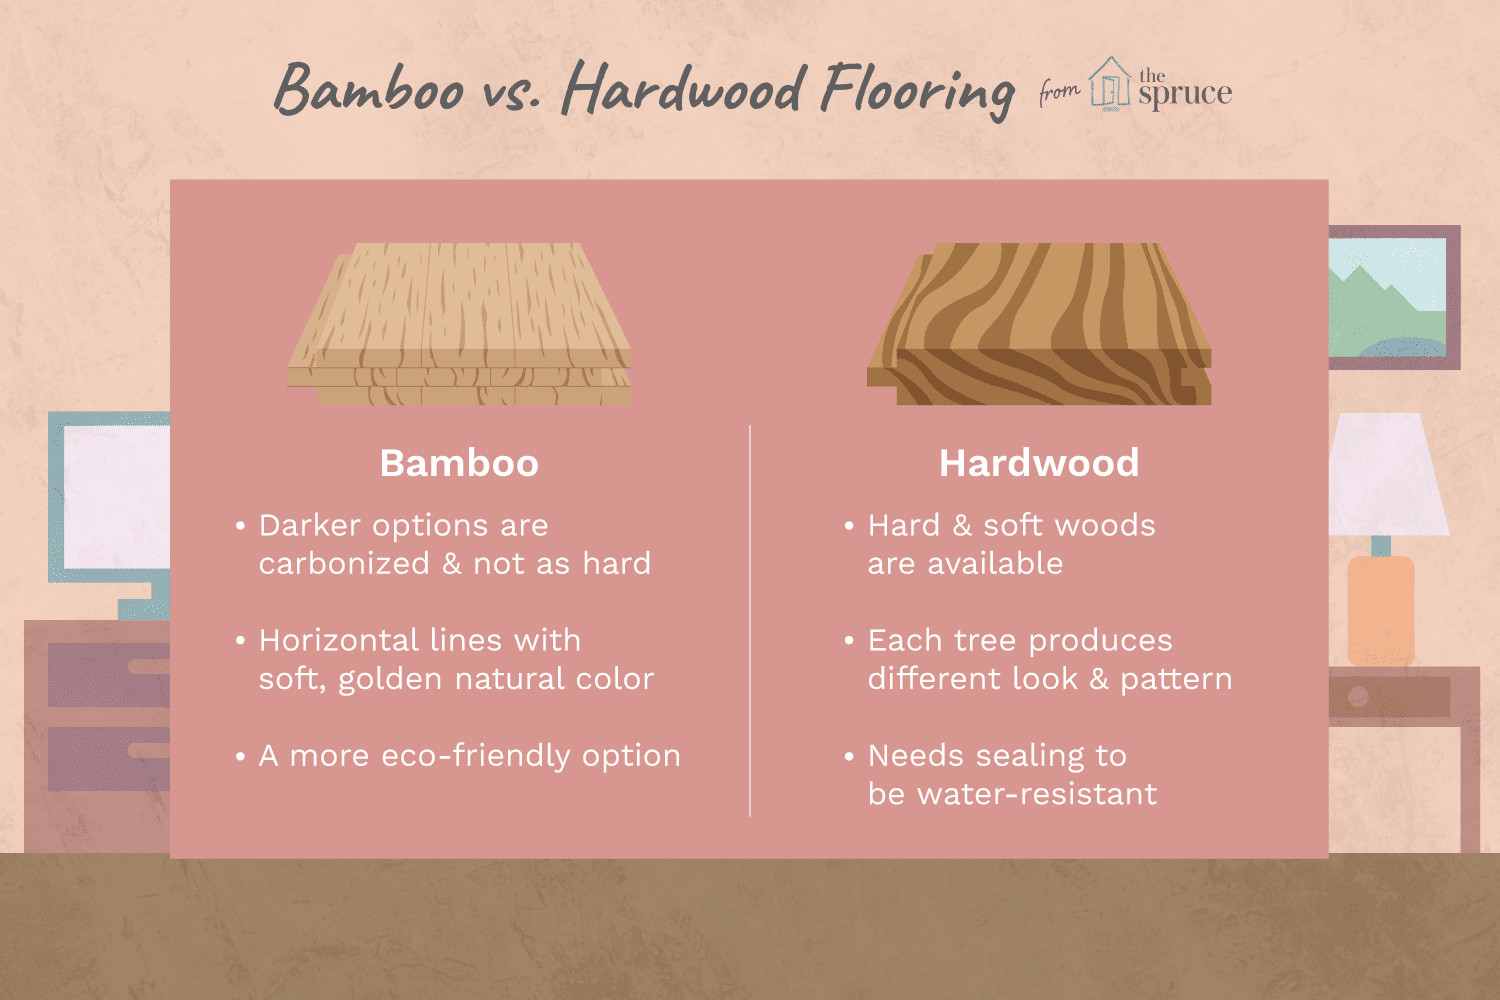 Pine Hardwood Flooring Prices Of A Side by Side Comparison Bamboo and Wood Flooring Pertaining to Price Of Wood and Bamboo Floors